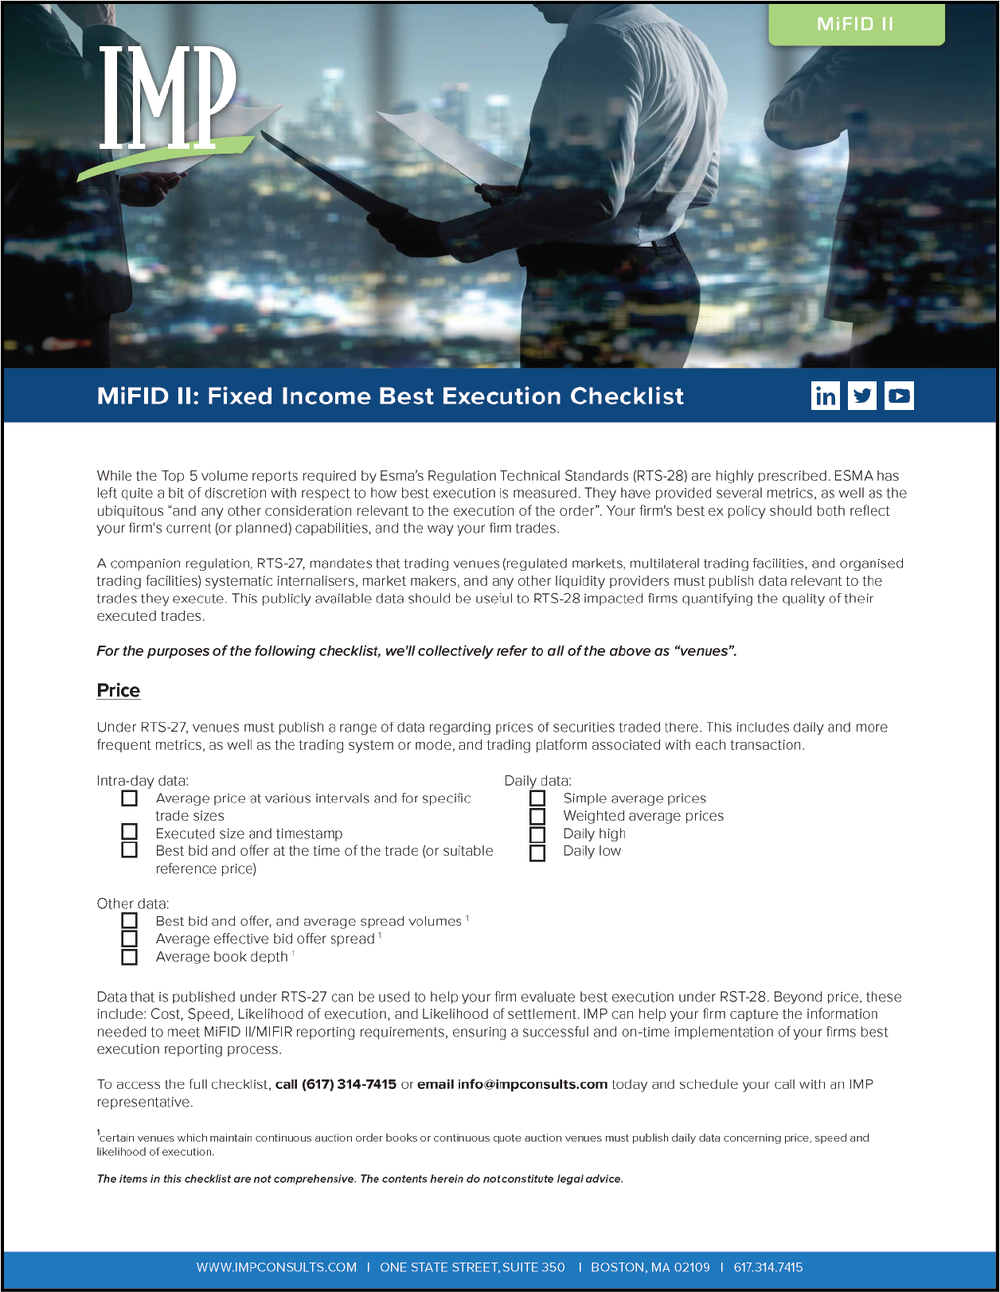 Download The MiFID II Fixed Income Best Execution Checklist